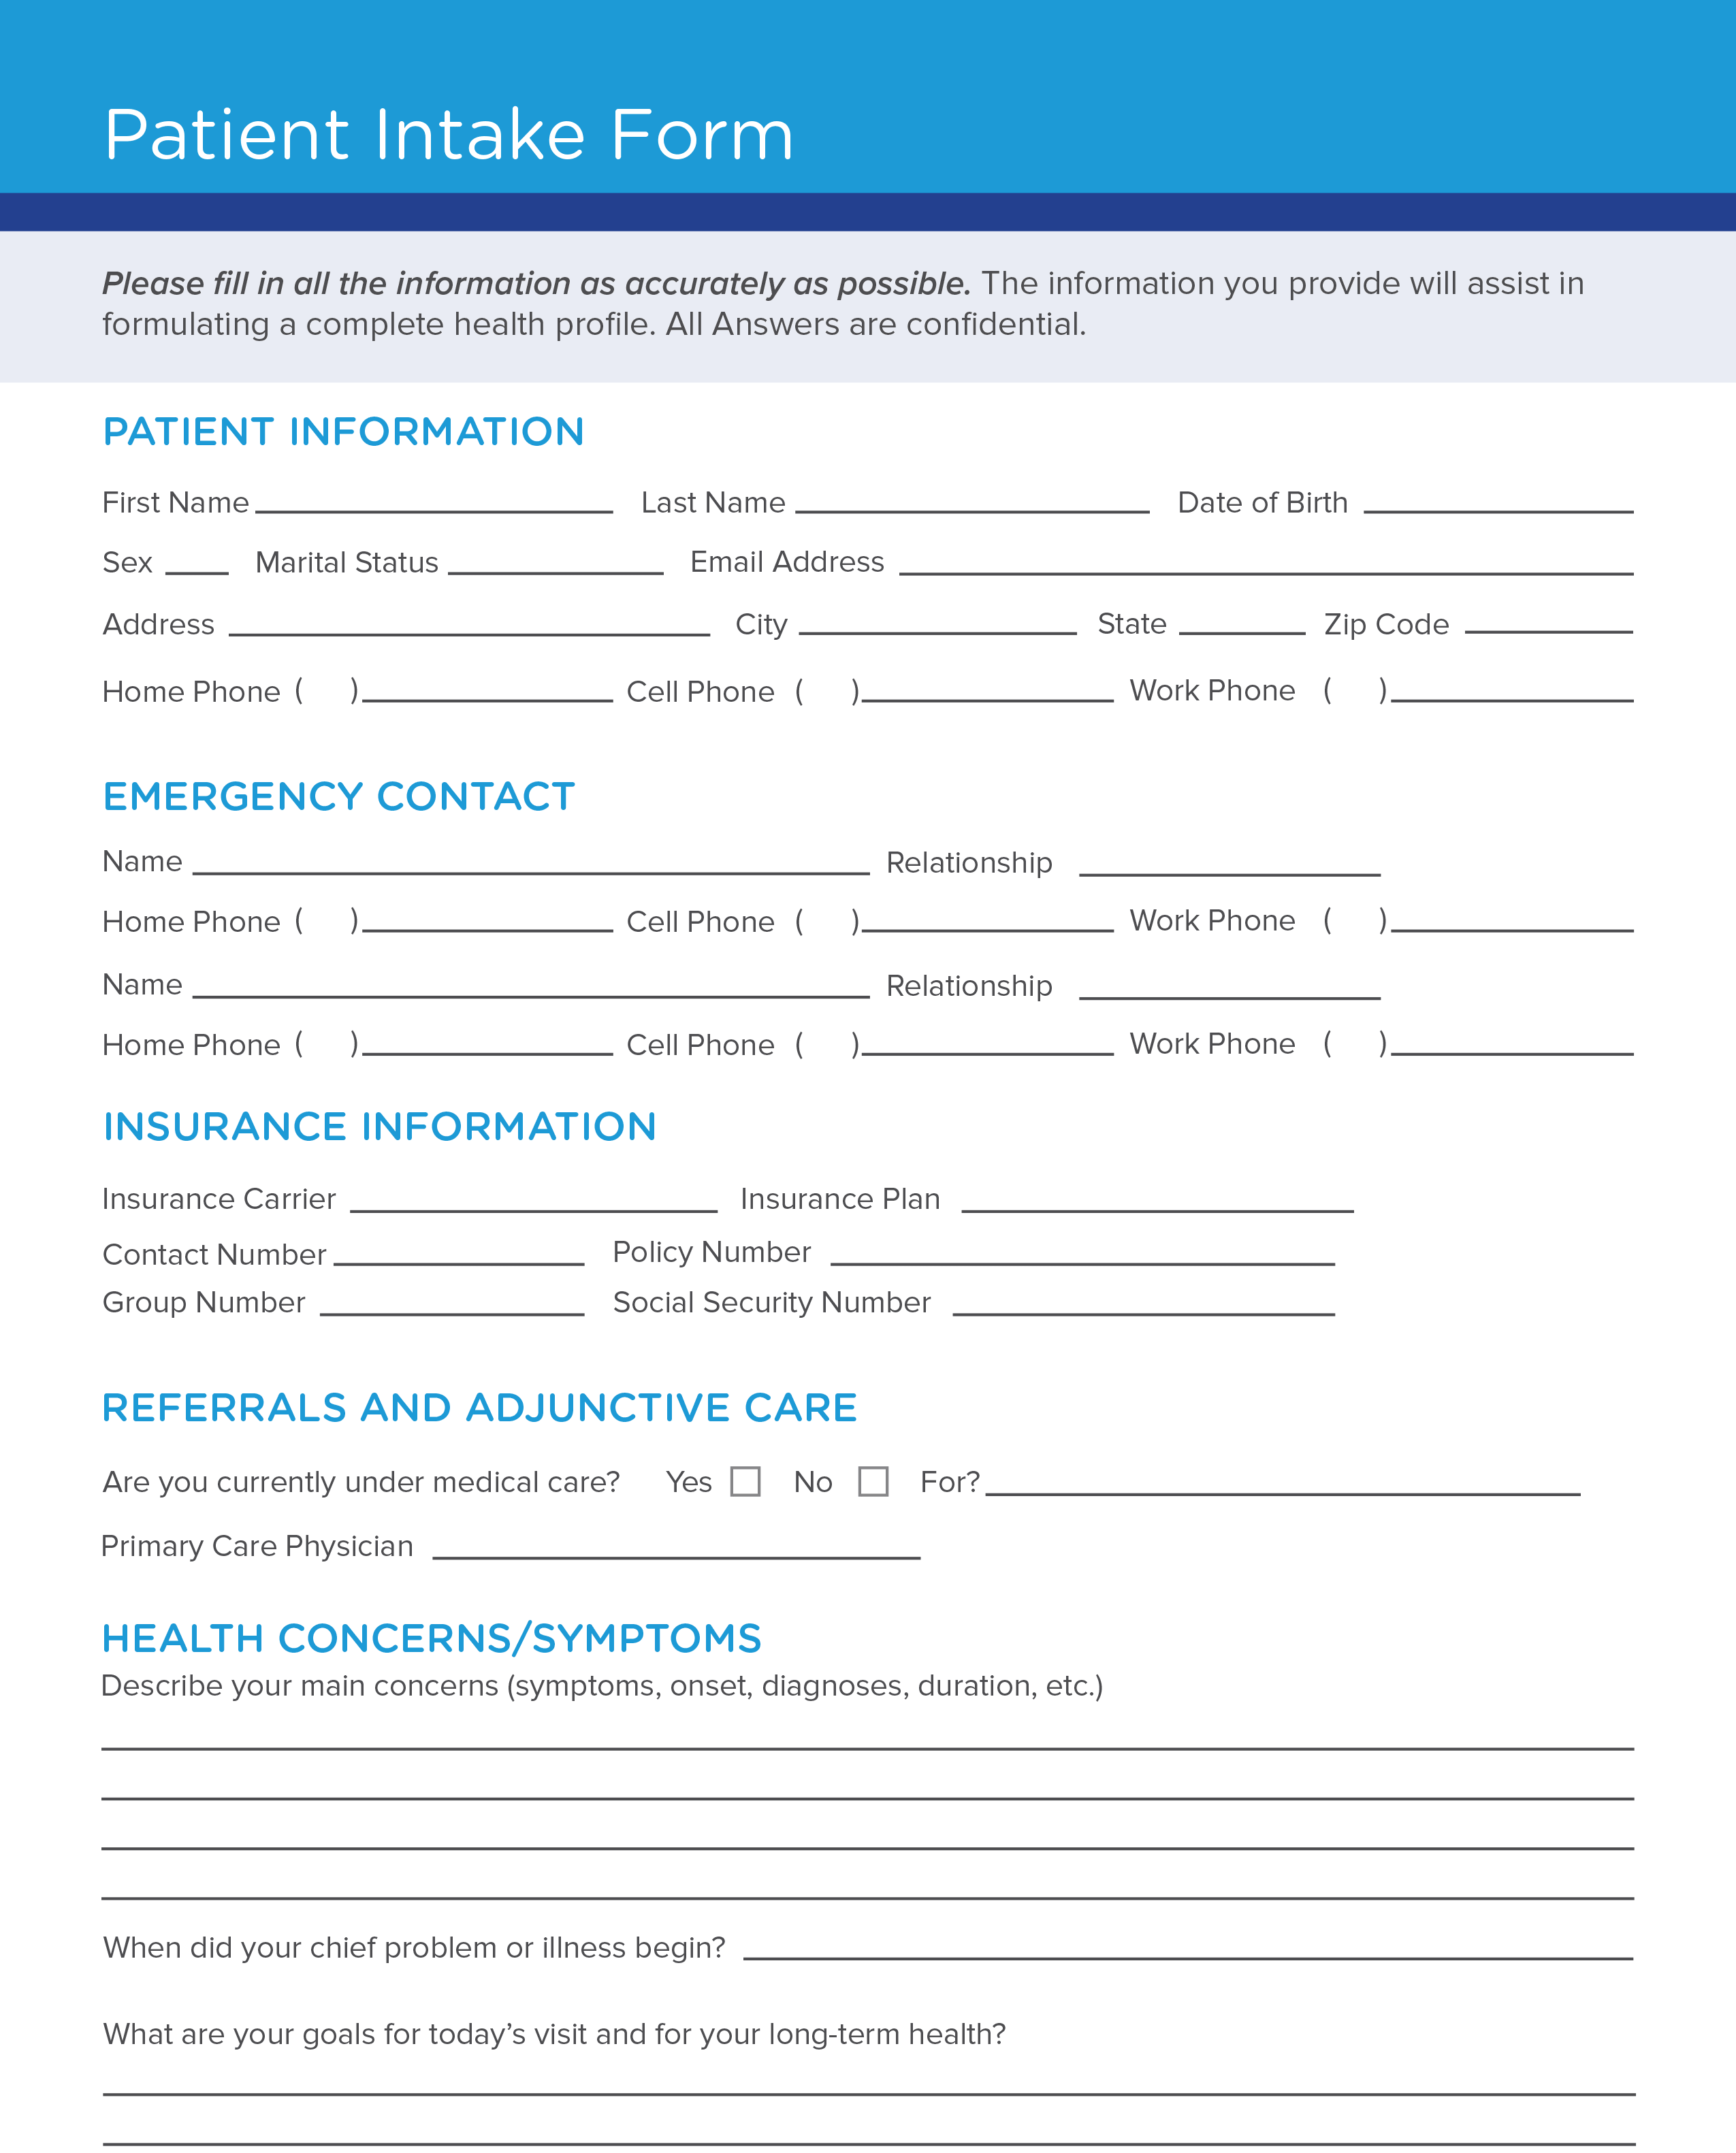 Free Patient Intake Form Template | CareCloud Continuum